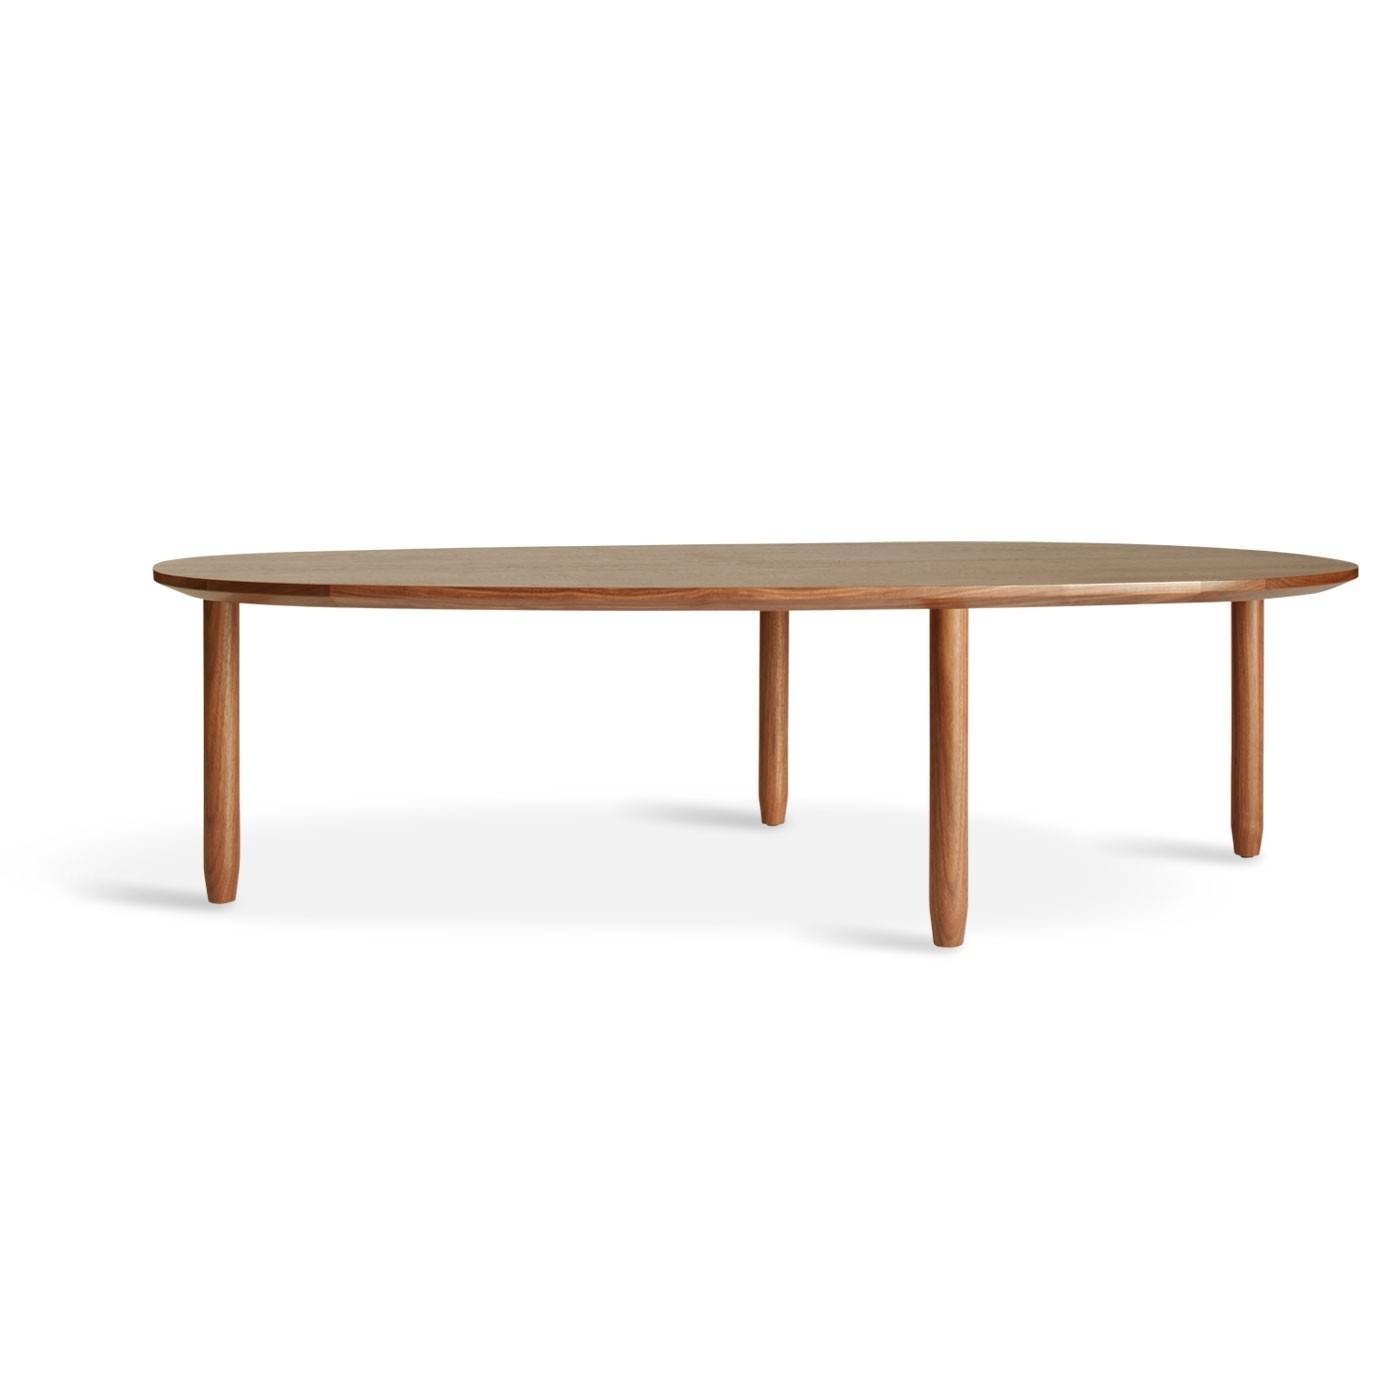 Swole Large Table - Large Modern Coffee Table | Blu Dot with Large Modern Coffee Tables (Image 15 of 15)